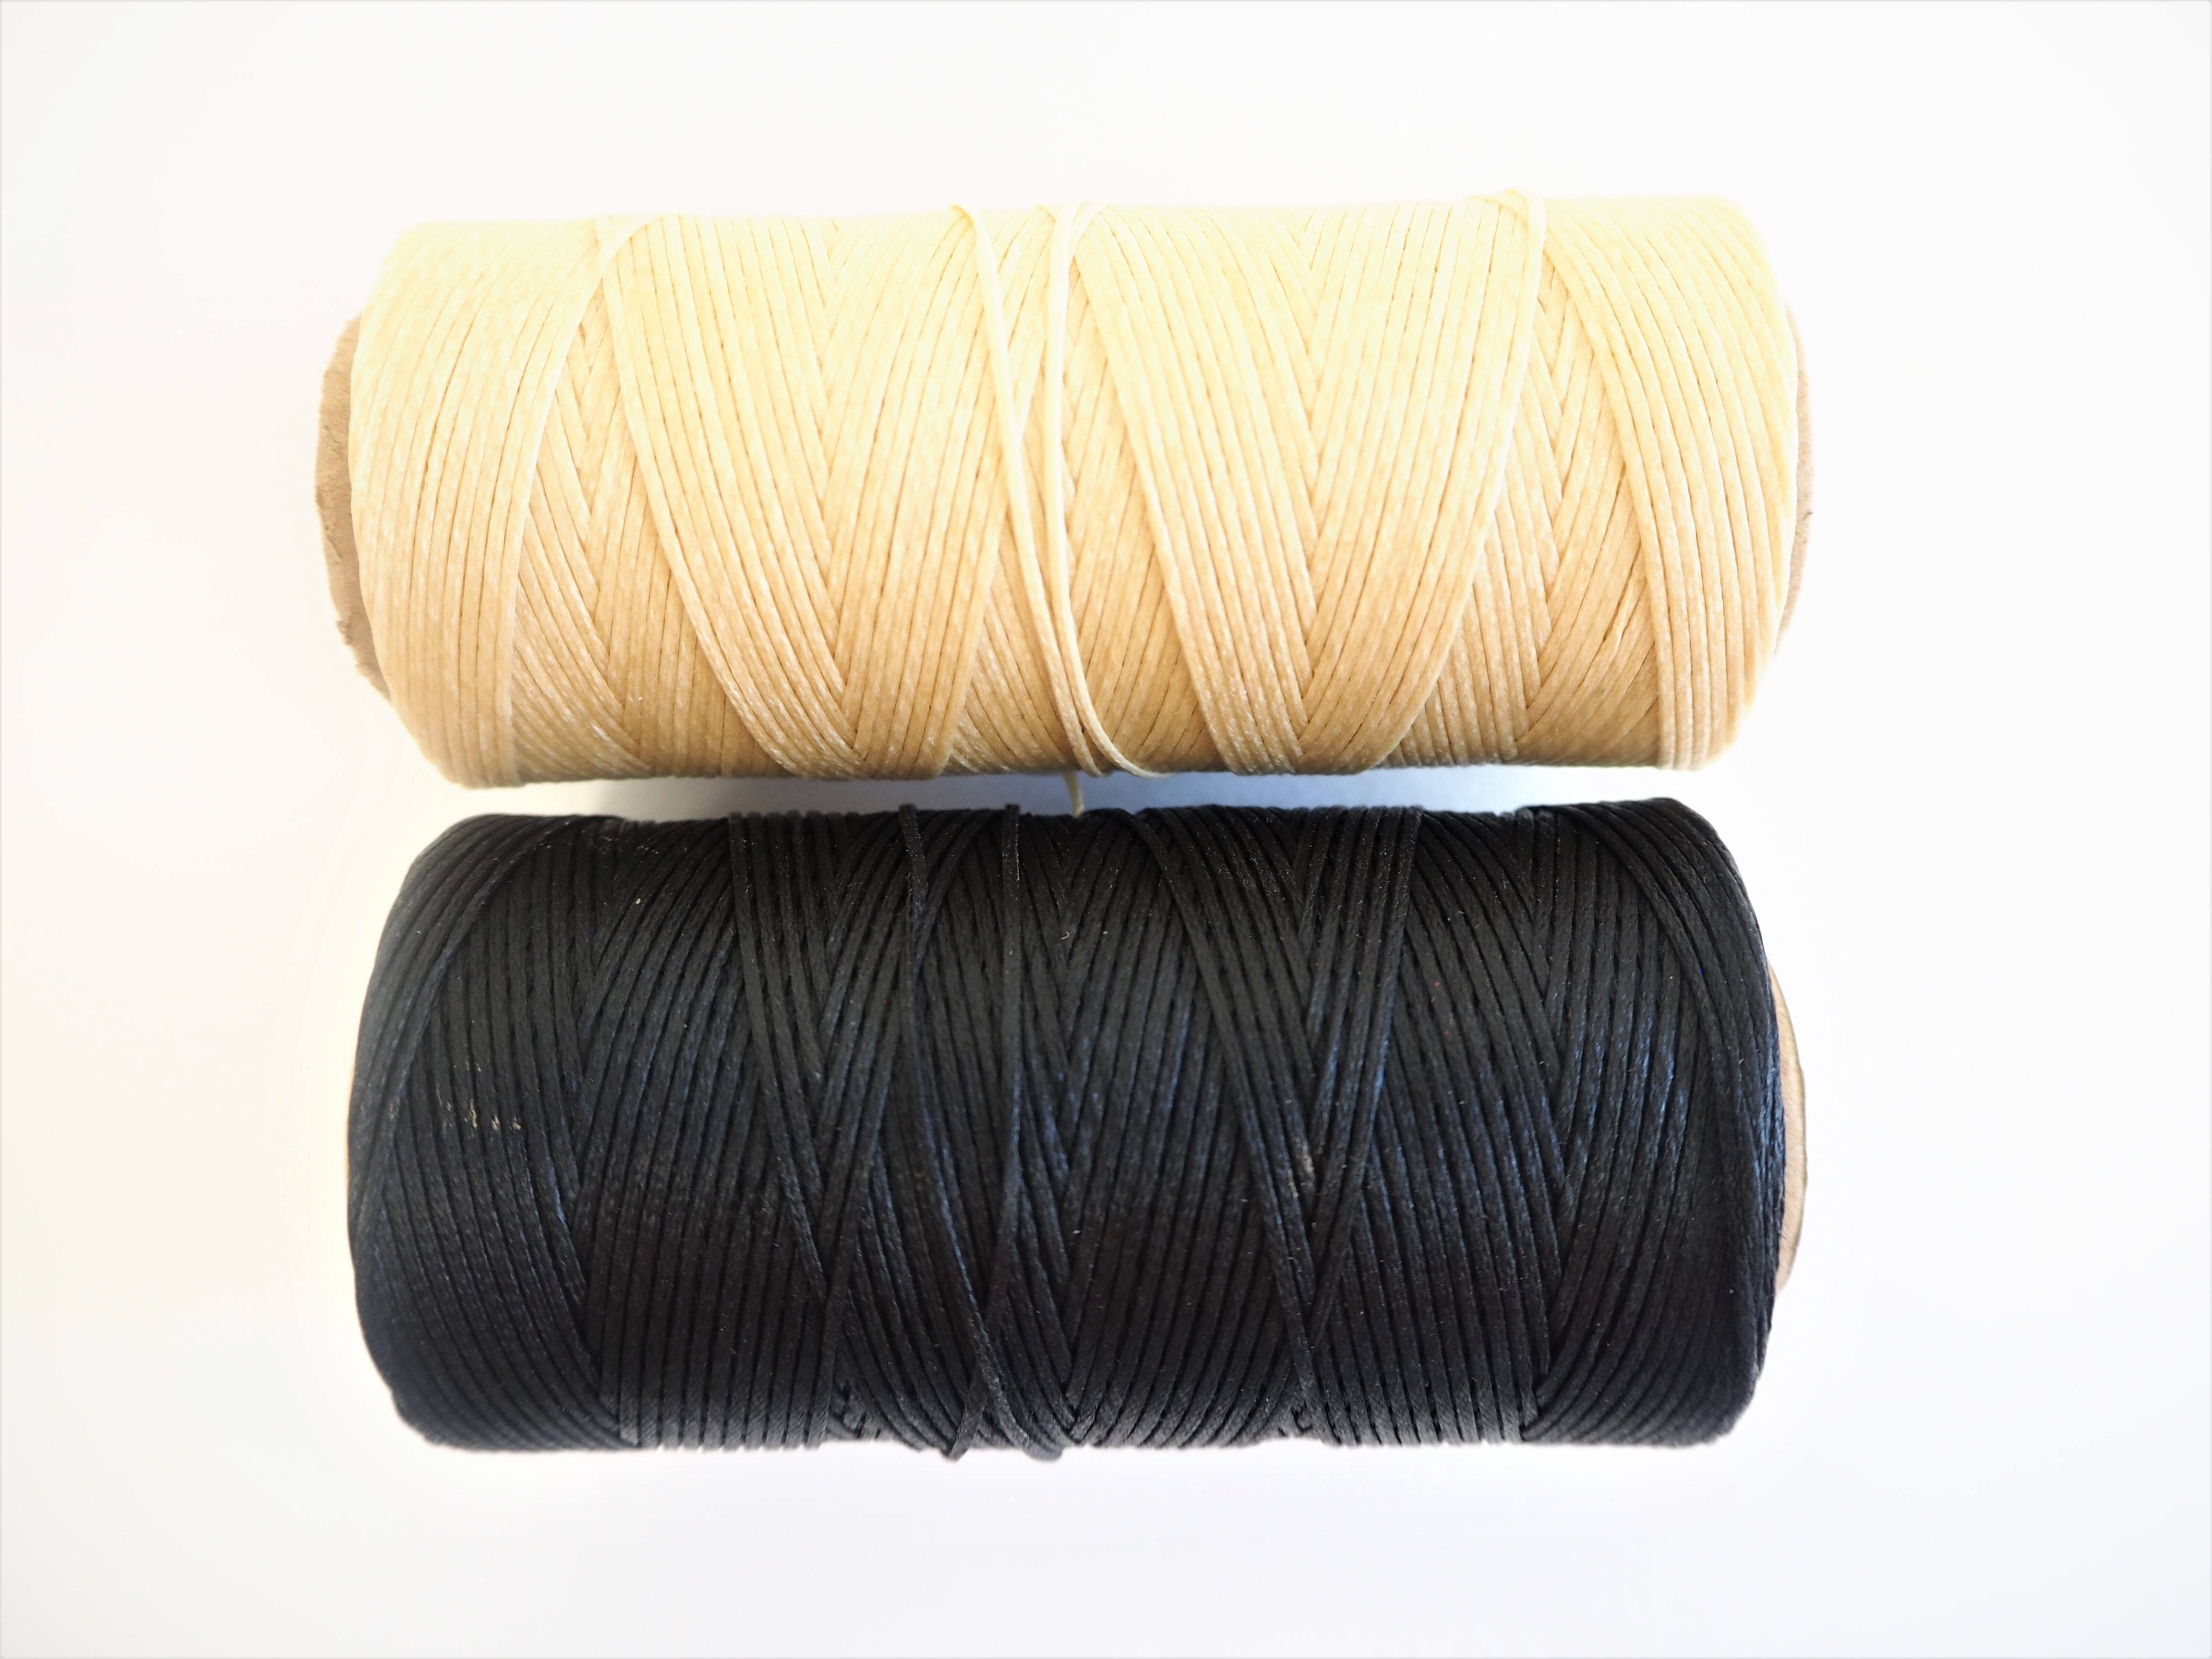 Waxed Bookbinding Thread - Black and Ivory